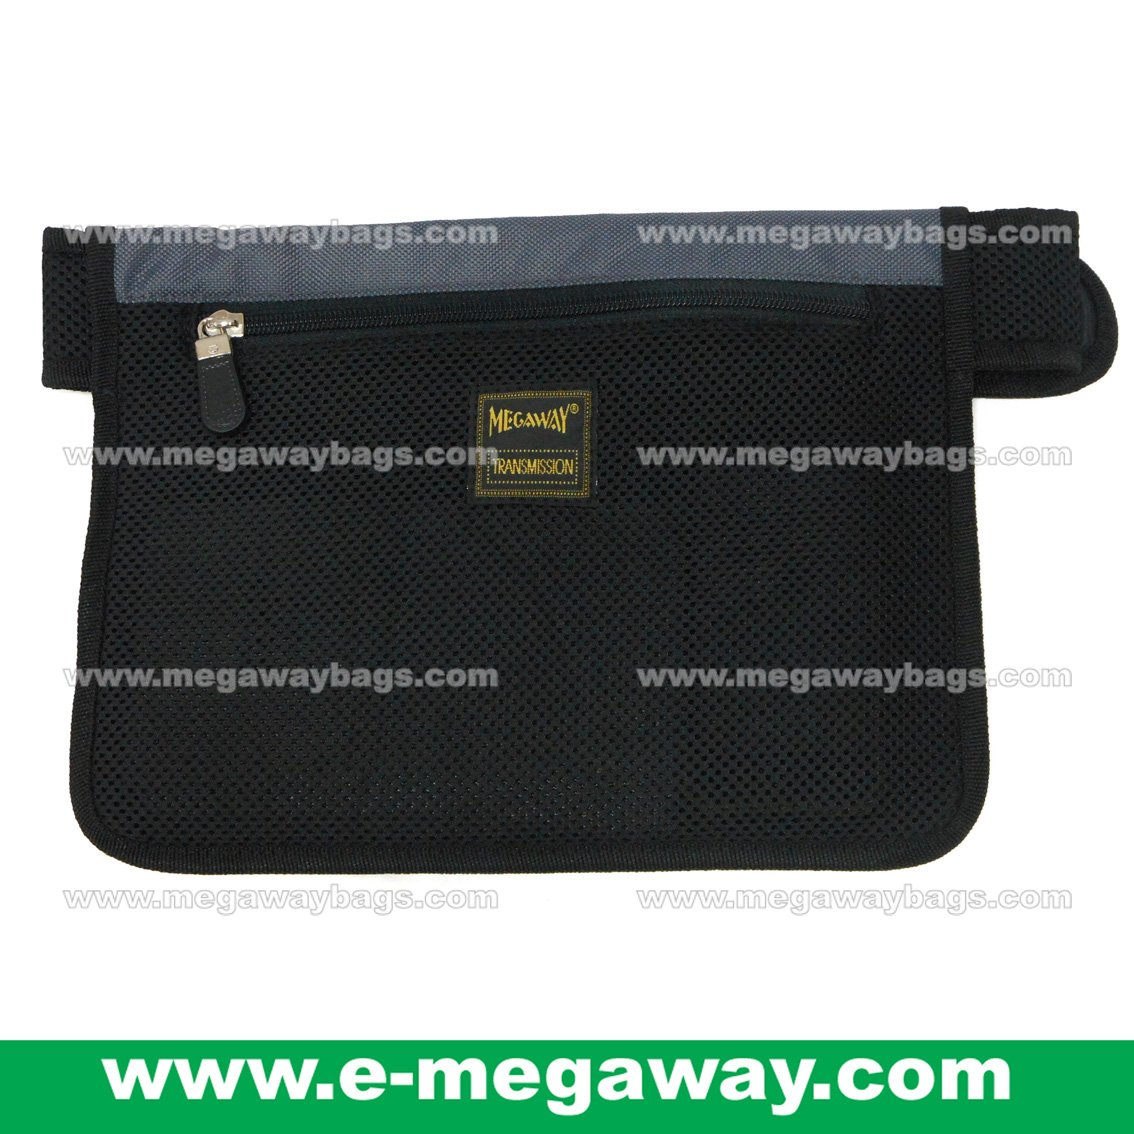 Designer Waist Bag (Detachable Belt) Purse Pouch Wallet Handbag MegawayBags #CC-0935